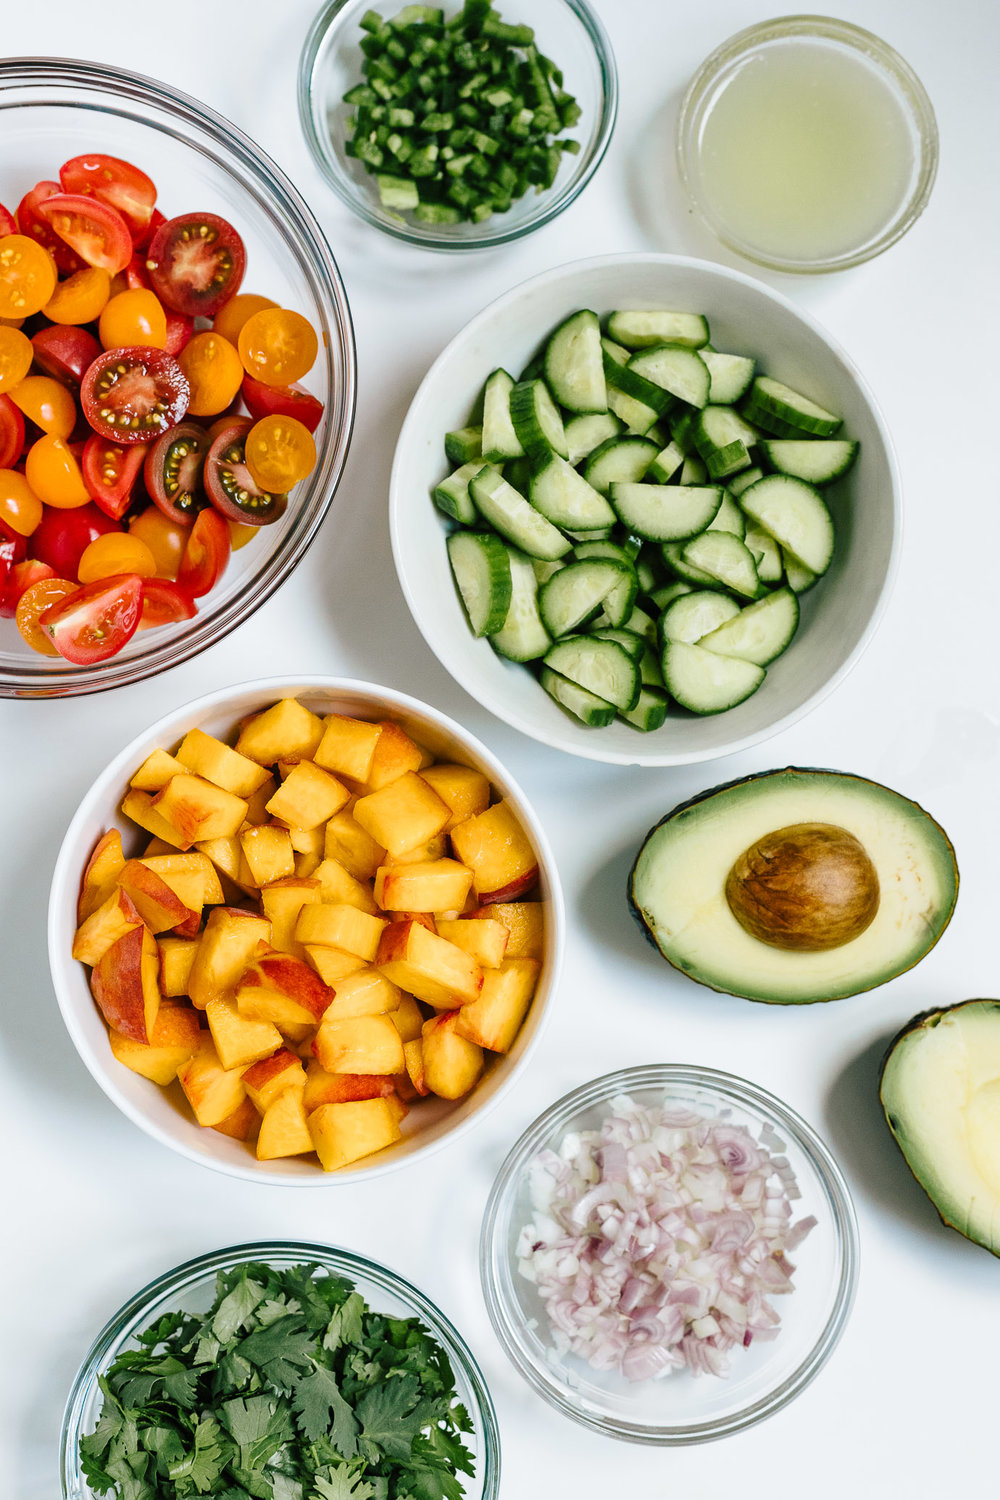 A fresh summer salad full of late summer produce - tomatoes, peaches, and cucumbers. Serve this Spicy Tomato Peach Salad as is or make it an entree by adding protein and more healthy fat.